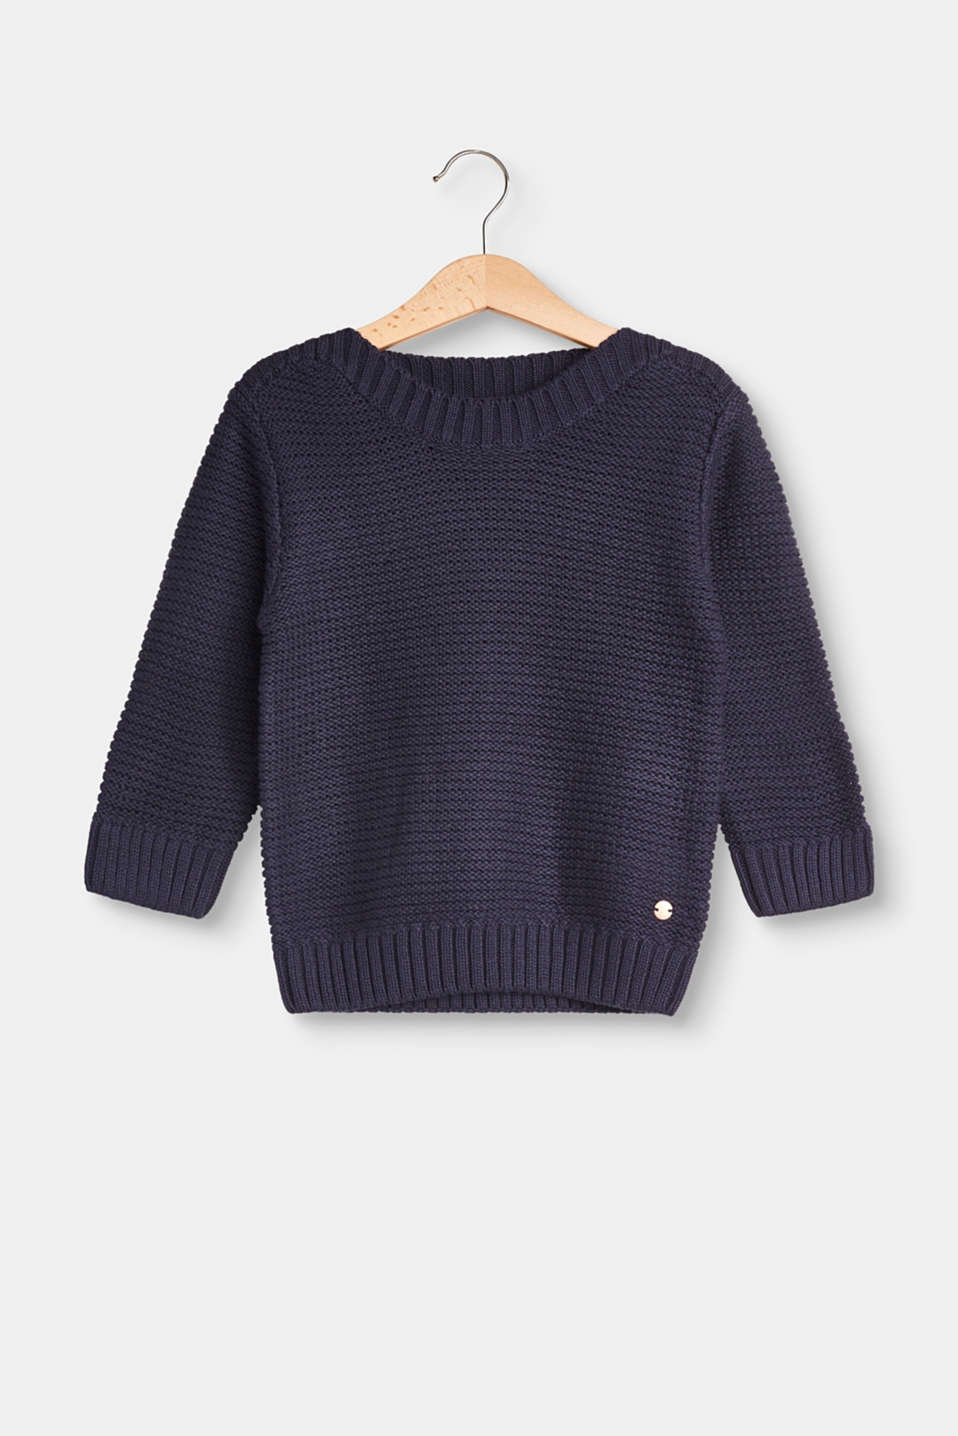 This soft jumper in a reverse garter stitch with a bateau neckline is a great basic.